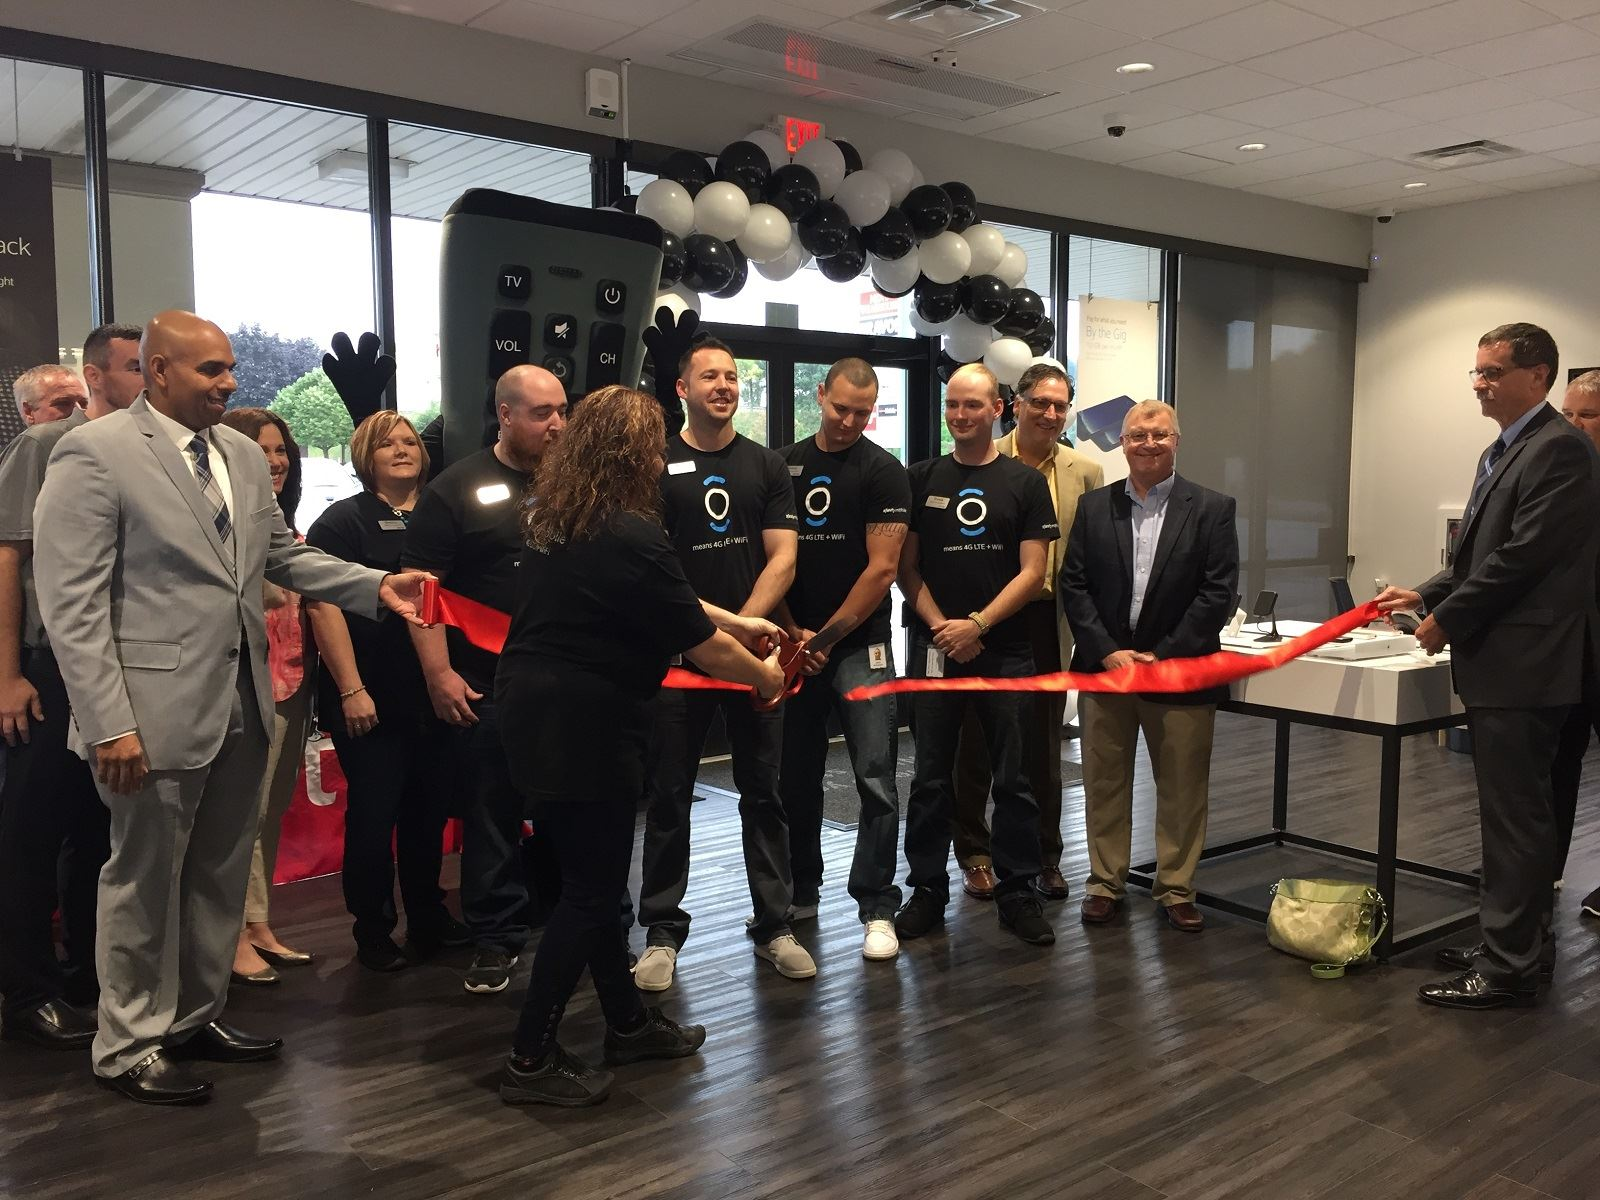 COMCAST CELEBRATES GRAND OPENING OF XFINITY STORE IN NORTH FAYETTE